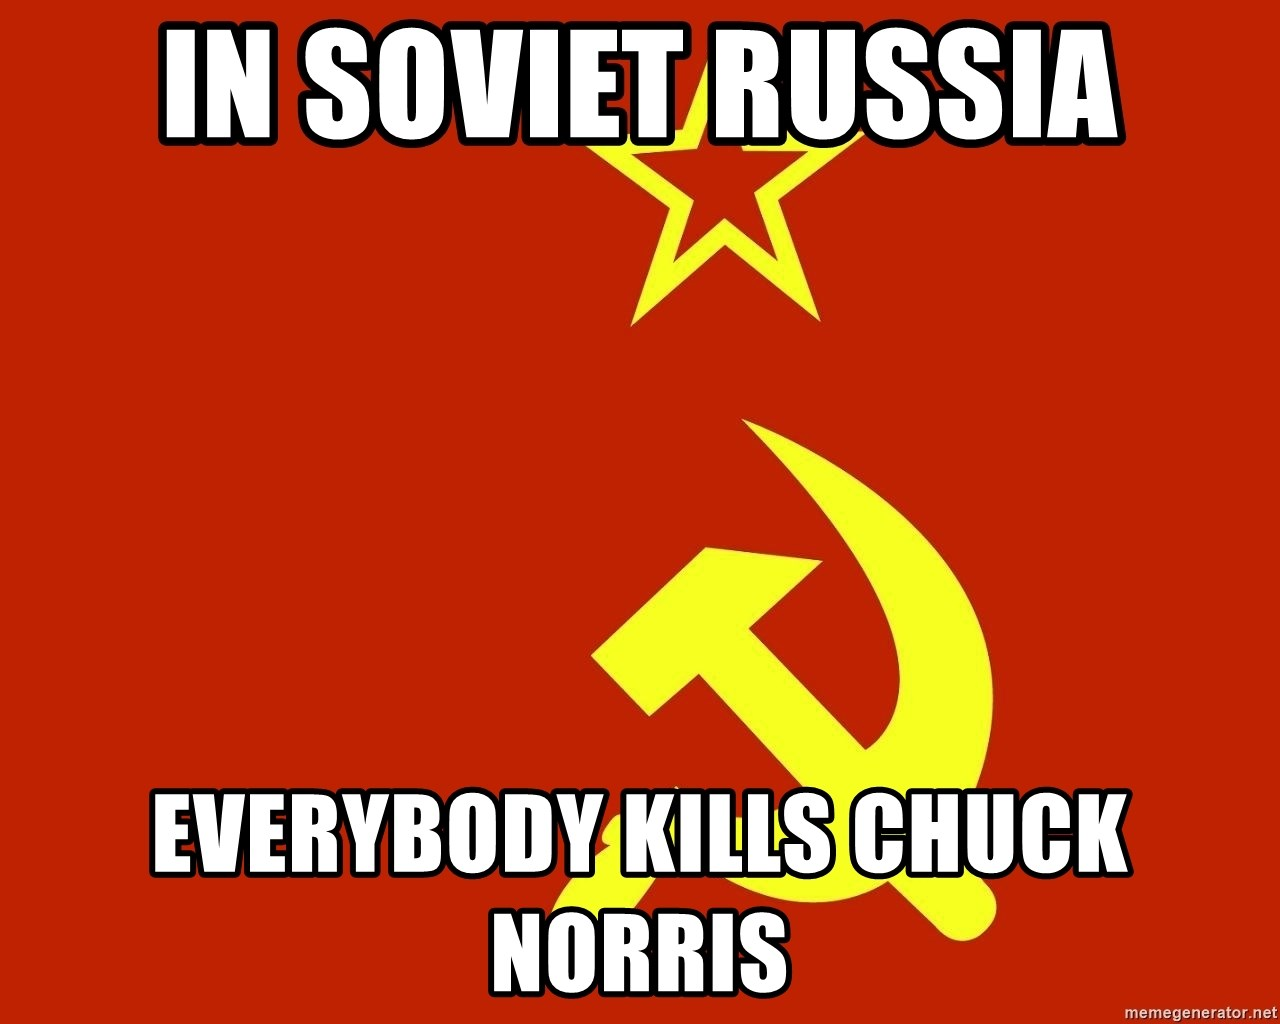 In Soviet Russia - in soviet russia everybody kills chuck norris